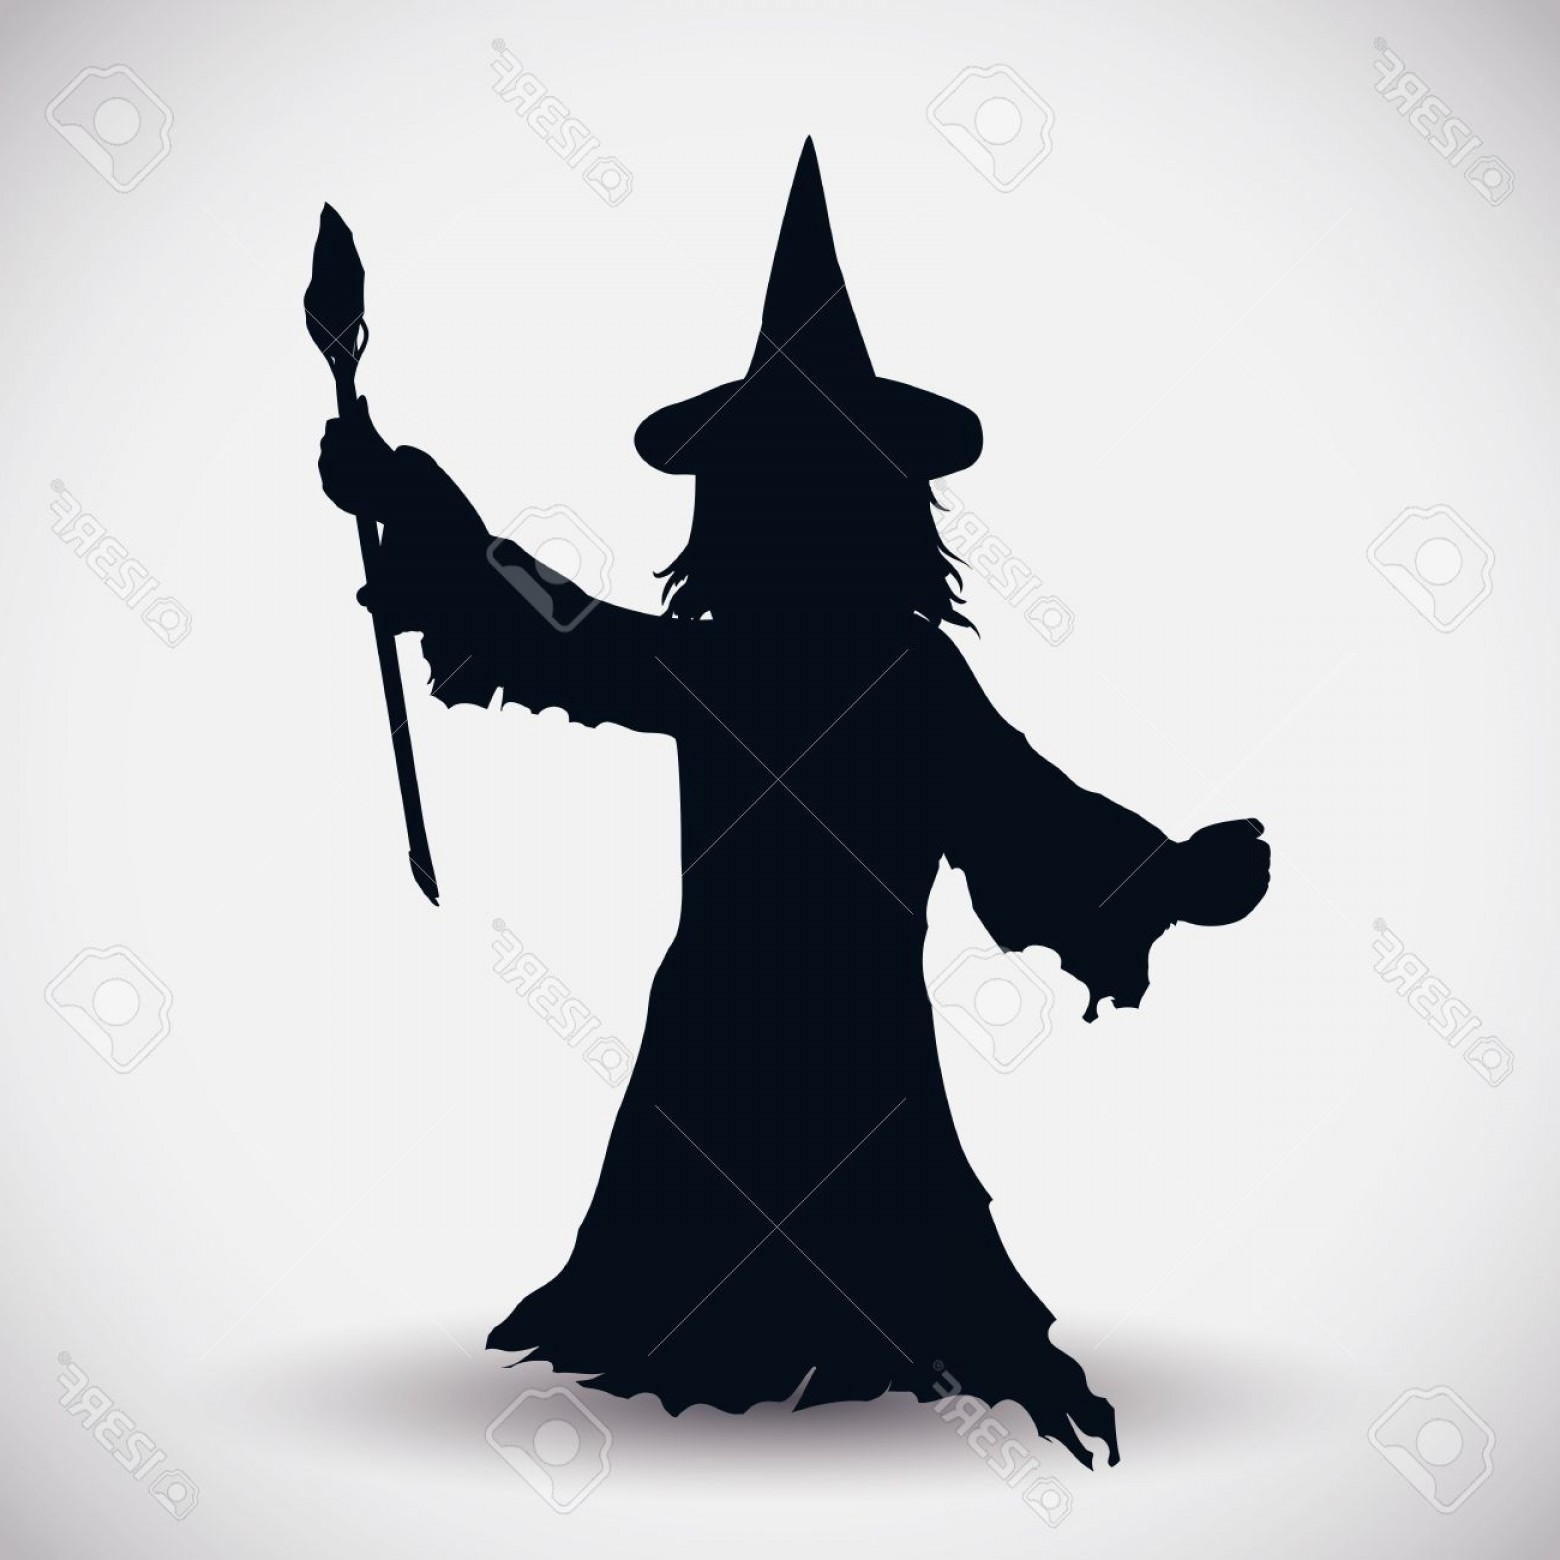 Wizard Silhouette Vector: Photostock Vector With Magic Wand Wizard Silhouette Isolated On White Background